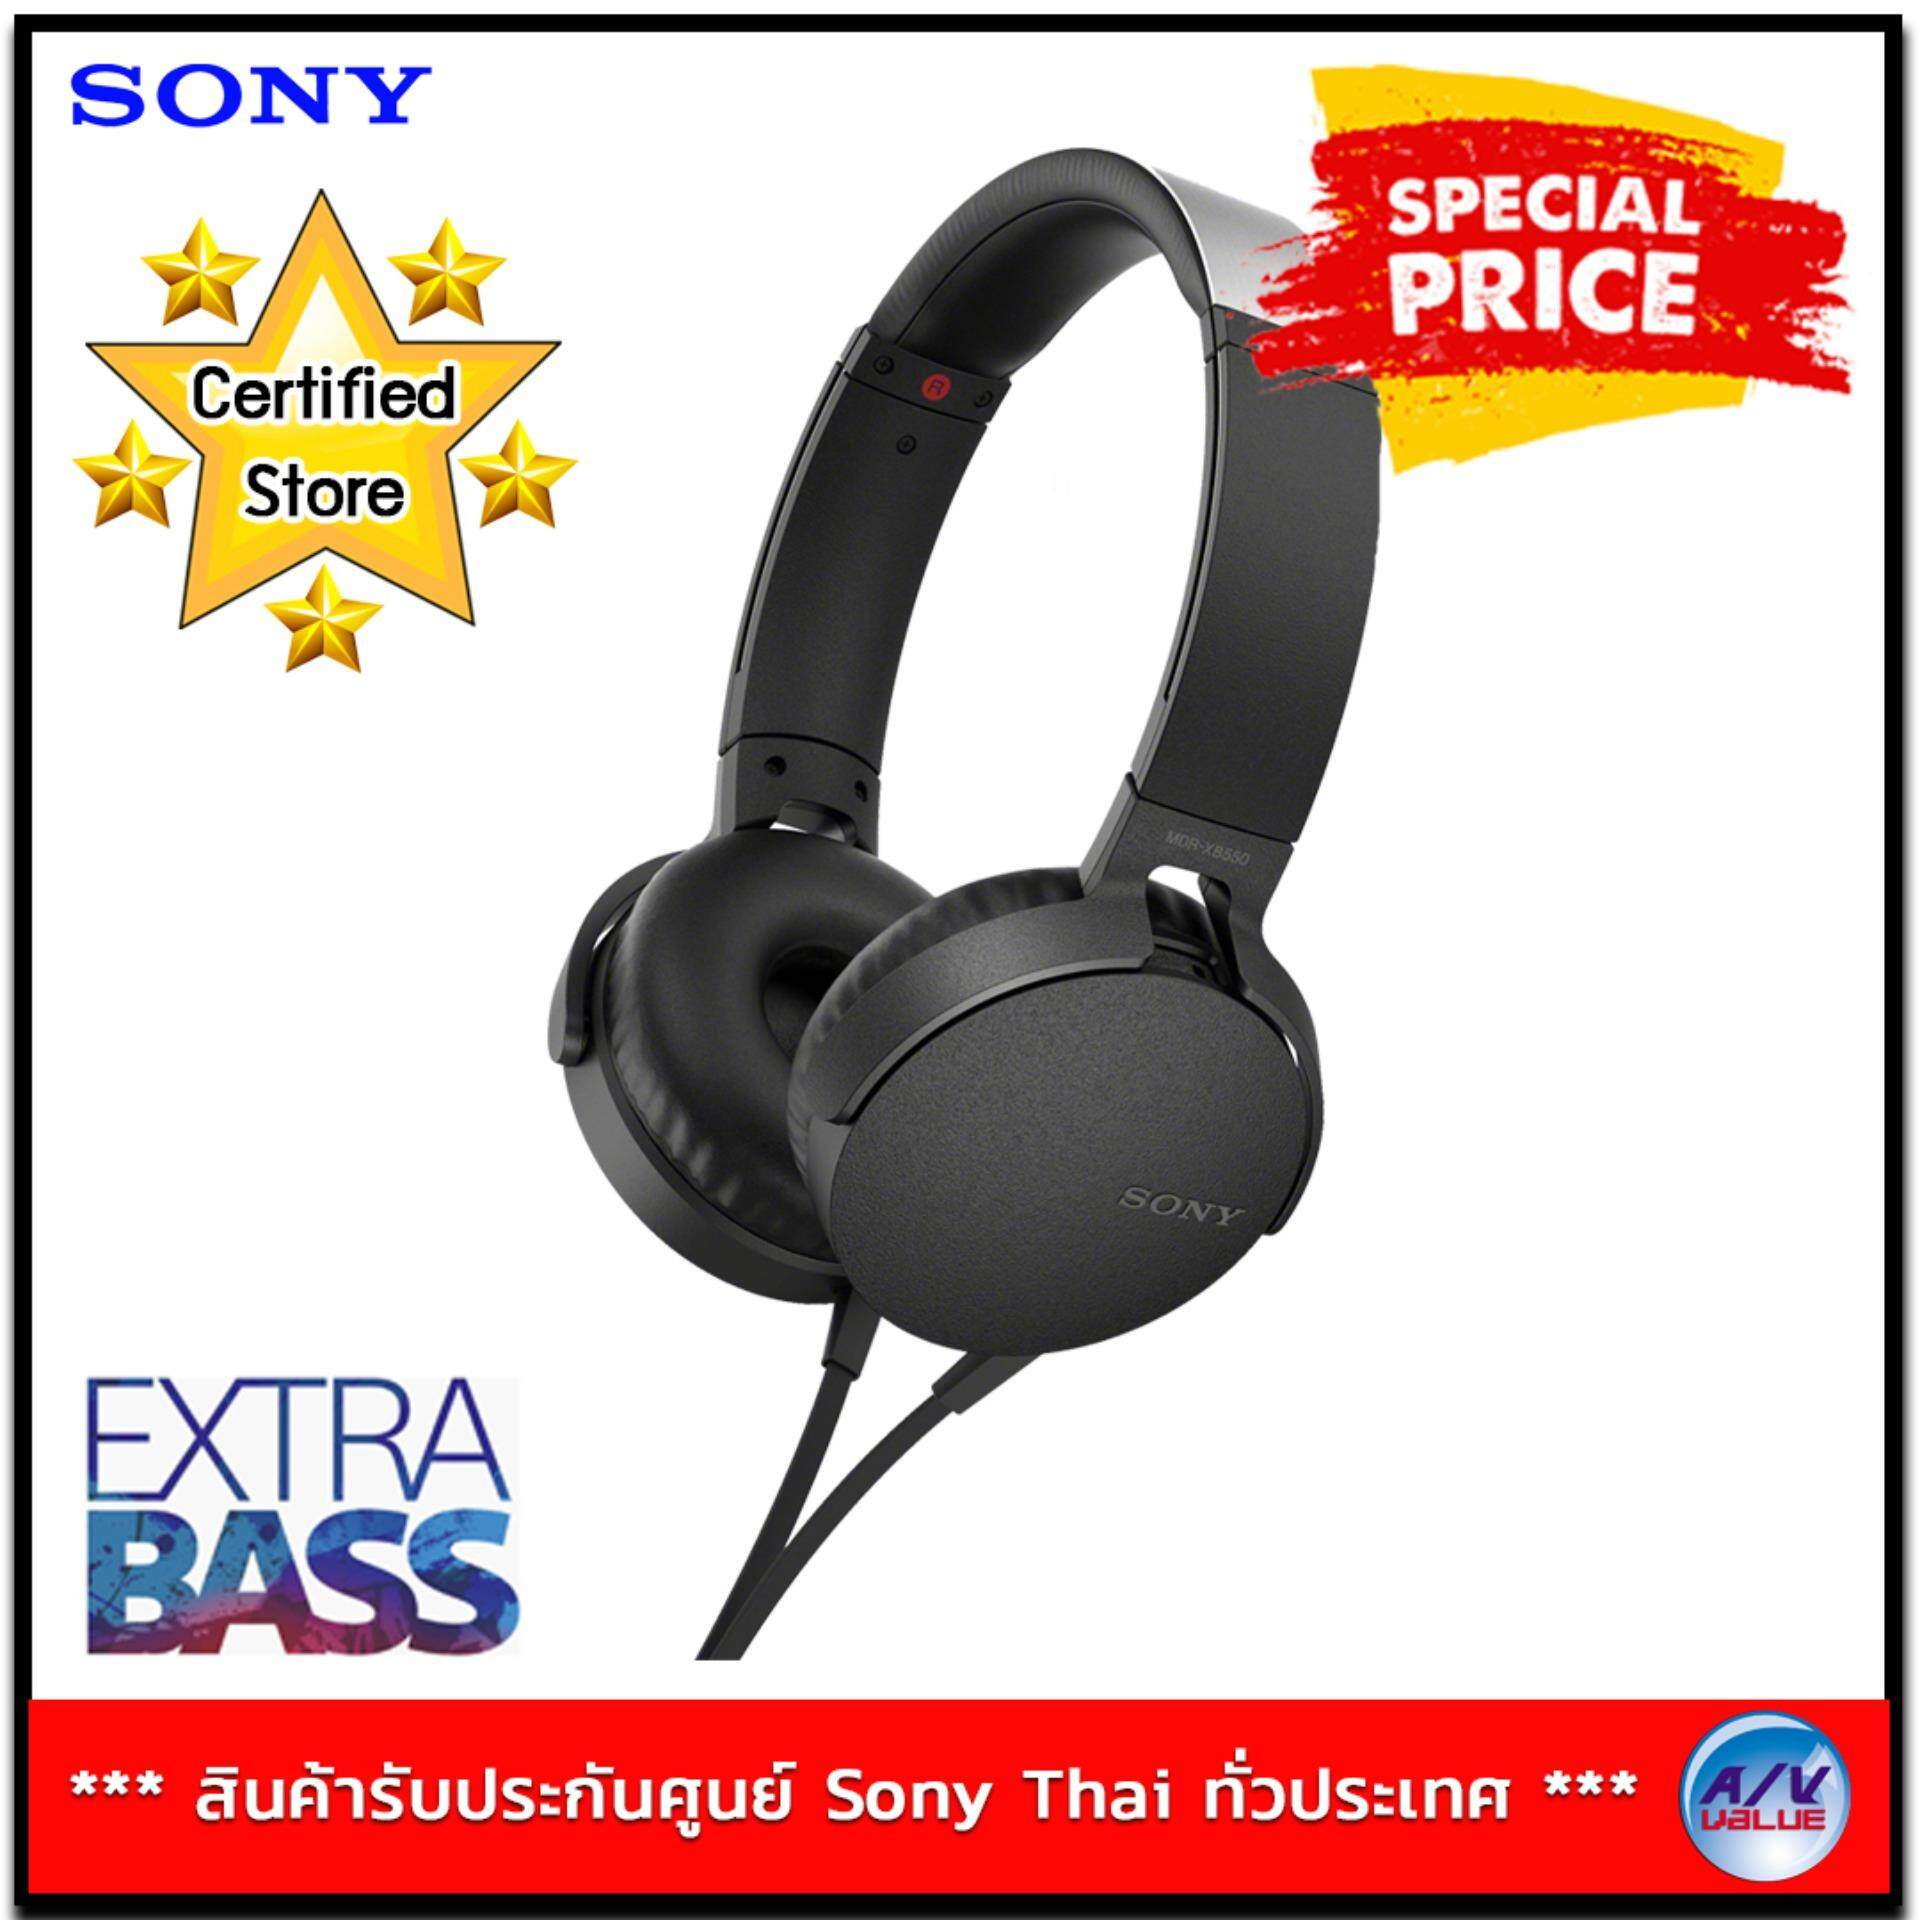 Sony Mdr-Xb550ap Extra Bass Wired On-Ear Headphones.